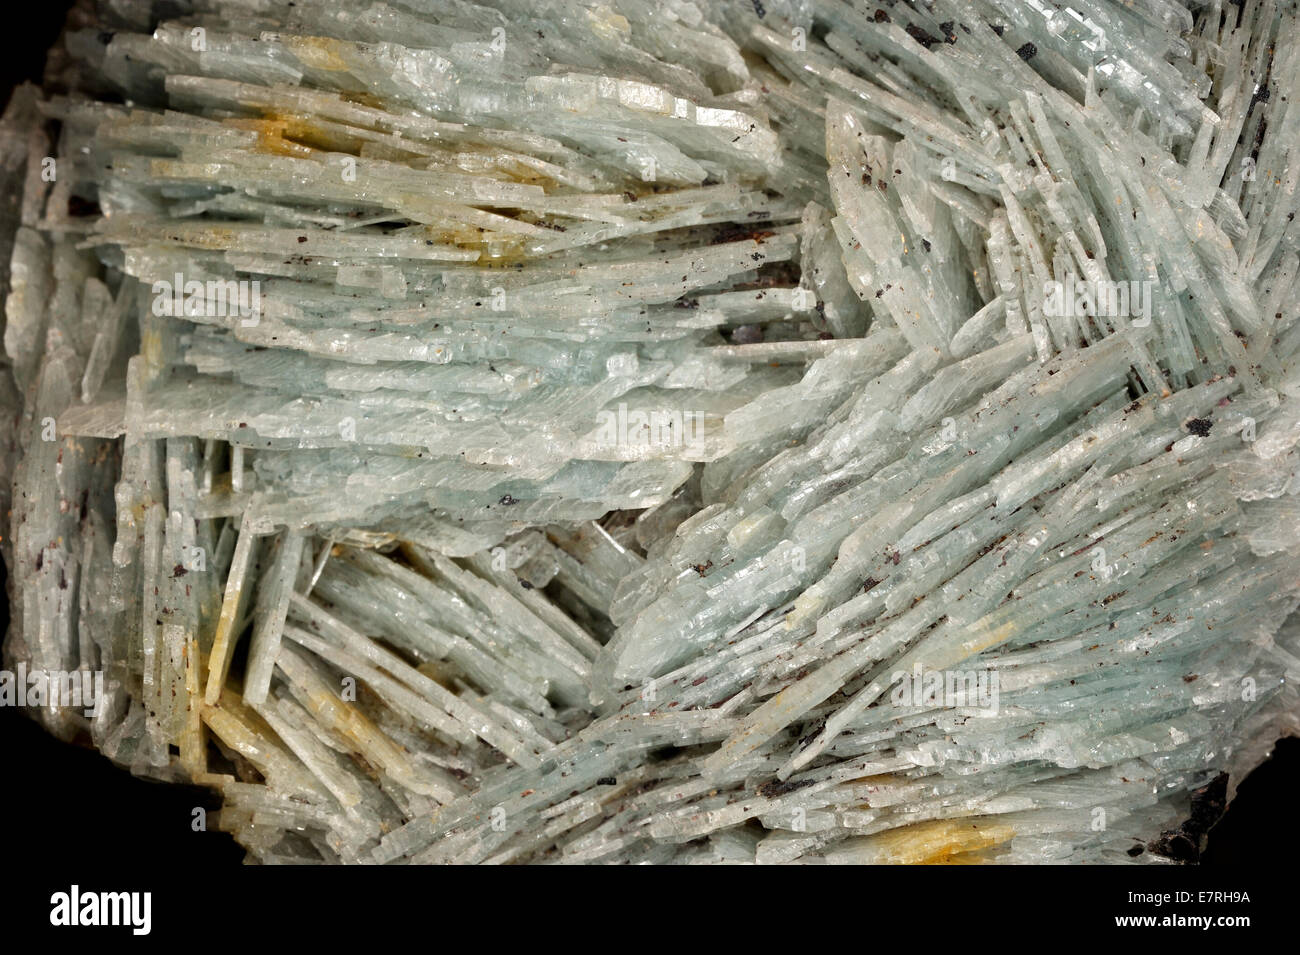 Barit with fumè  quartz, Minas Gerais, Brasile, South America - Stock Image